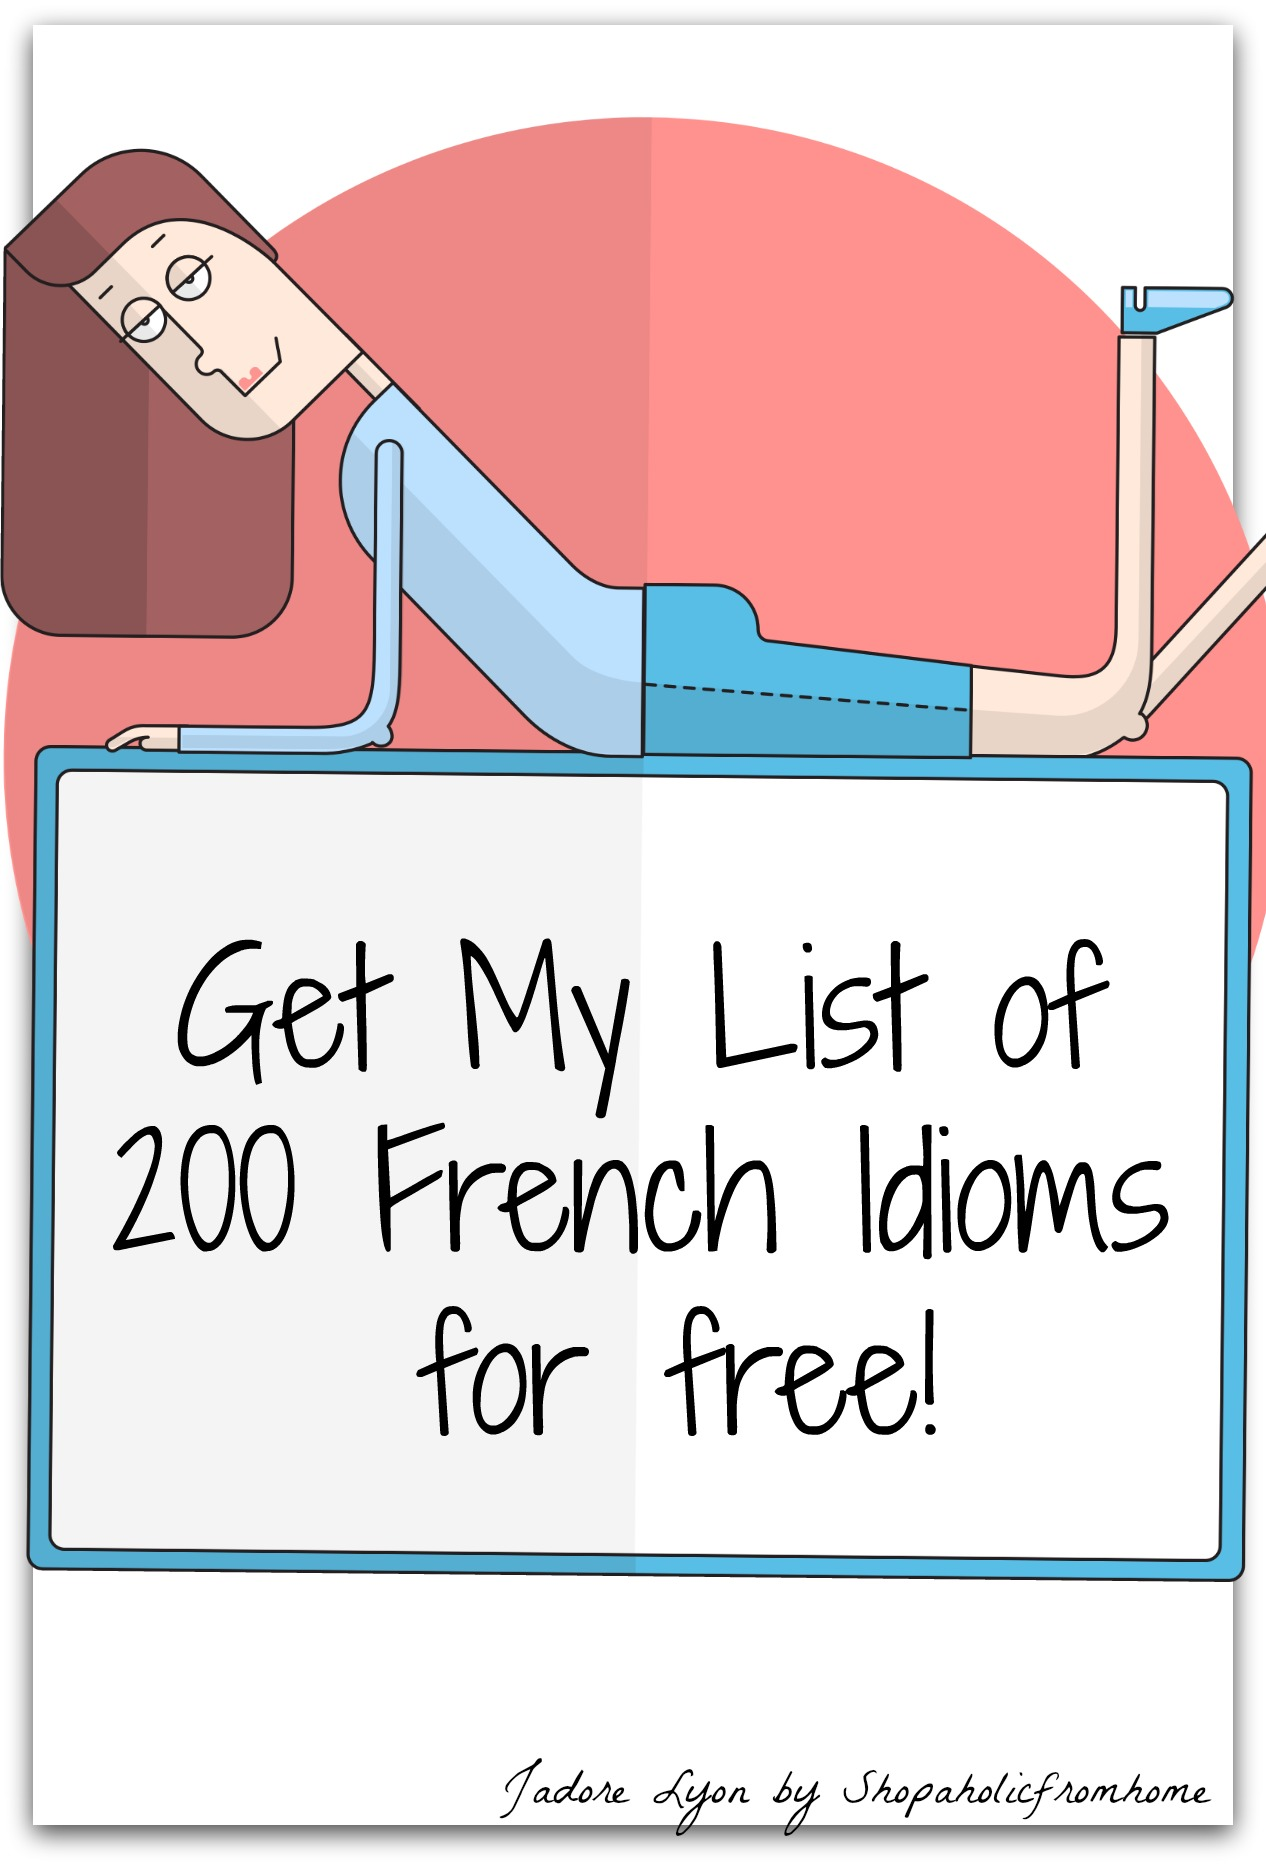 get-my-list-of-200-french-idioms-for-free-feature